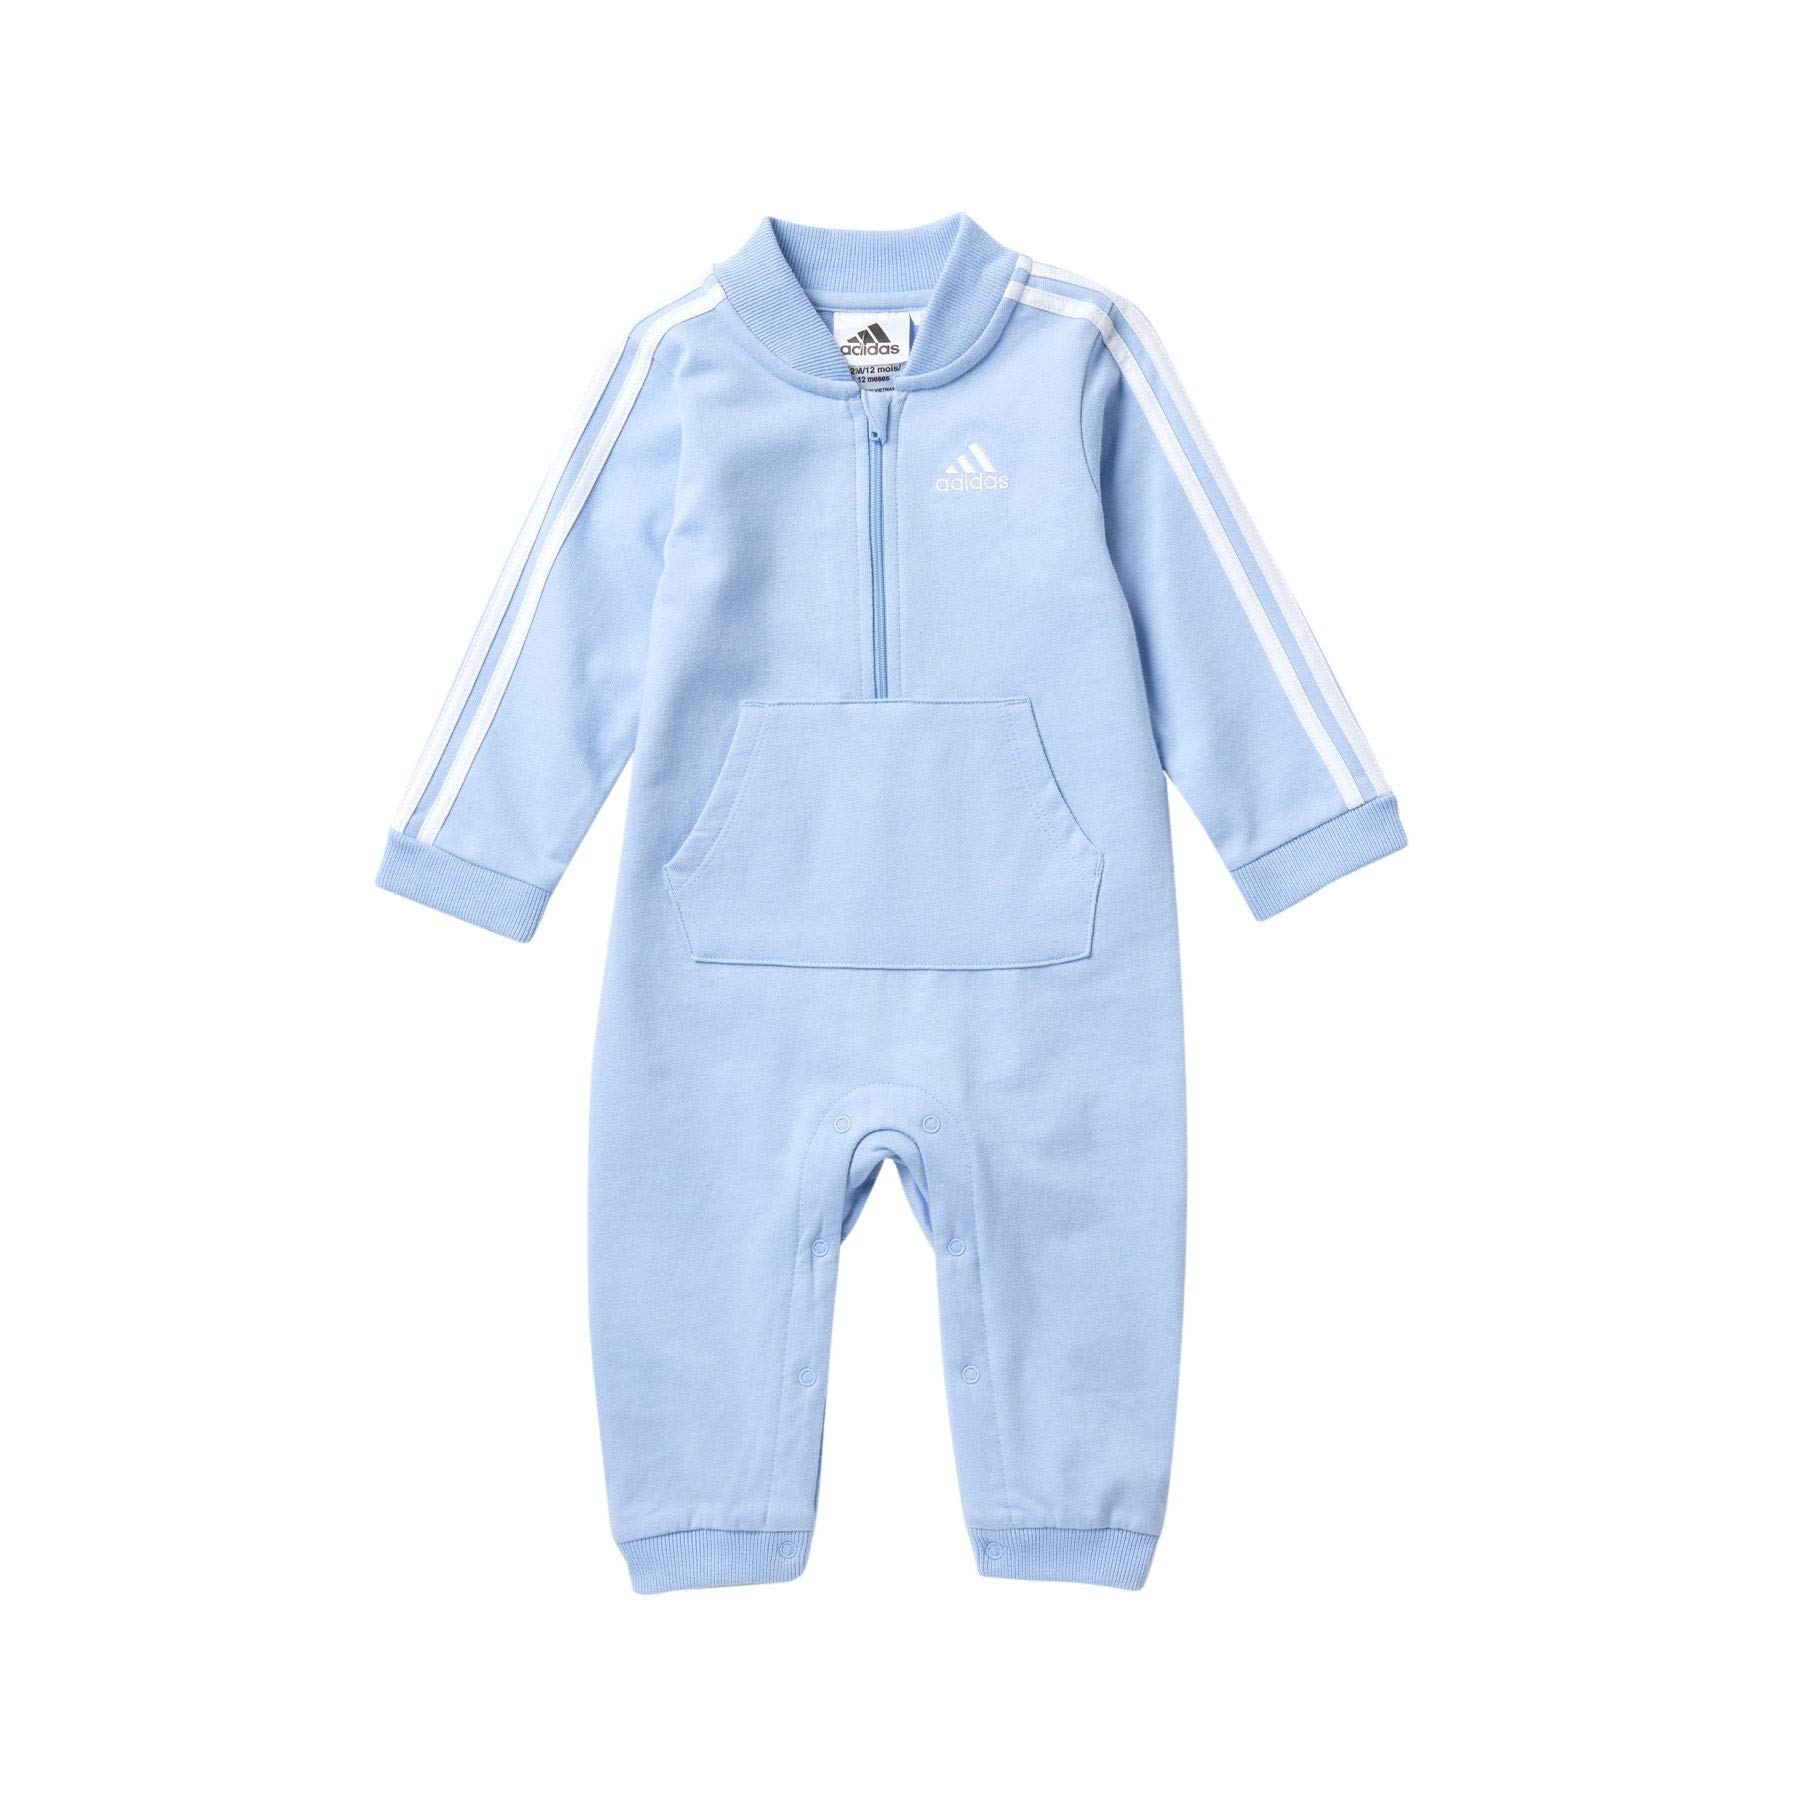 adidas Baby Boys' and Baby Girls Long Sleeve Hooded Coverall (Light Blue, 18 Months) by adidas